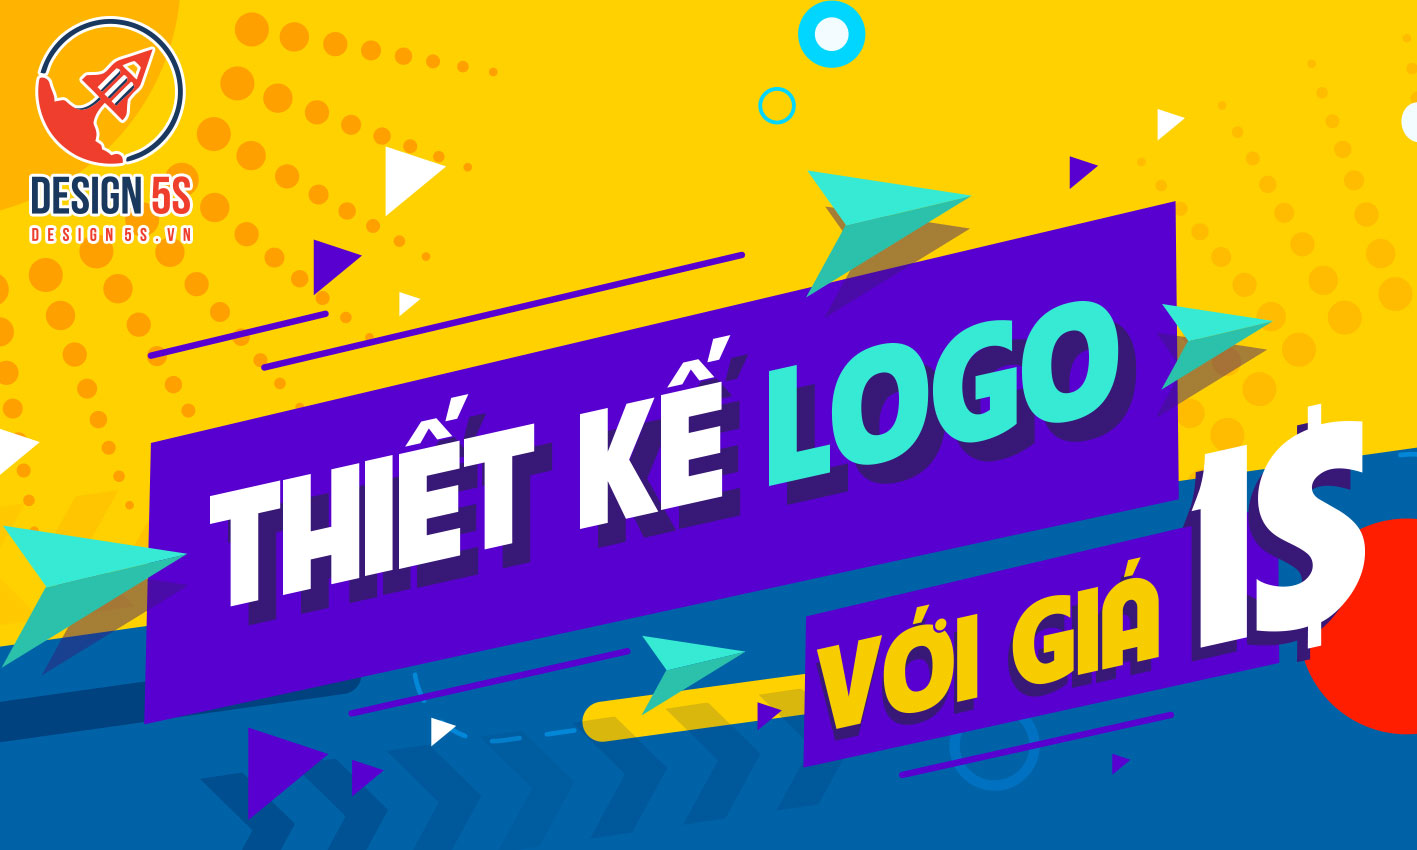 Thiết kế logo với 1$